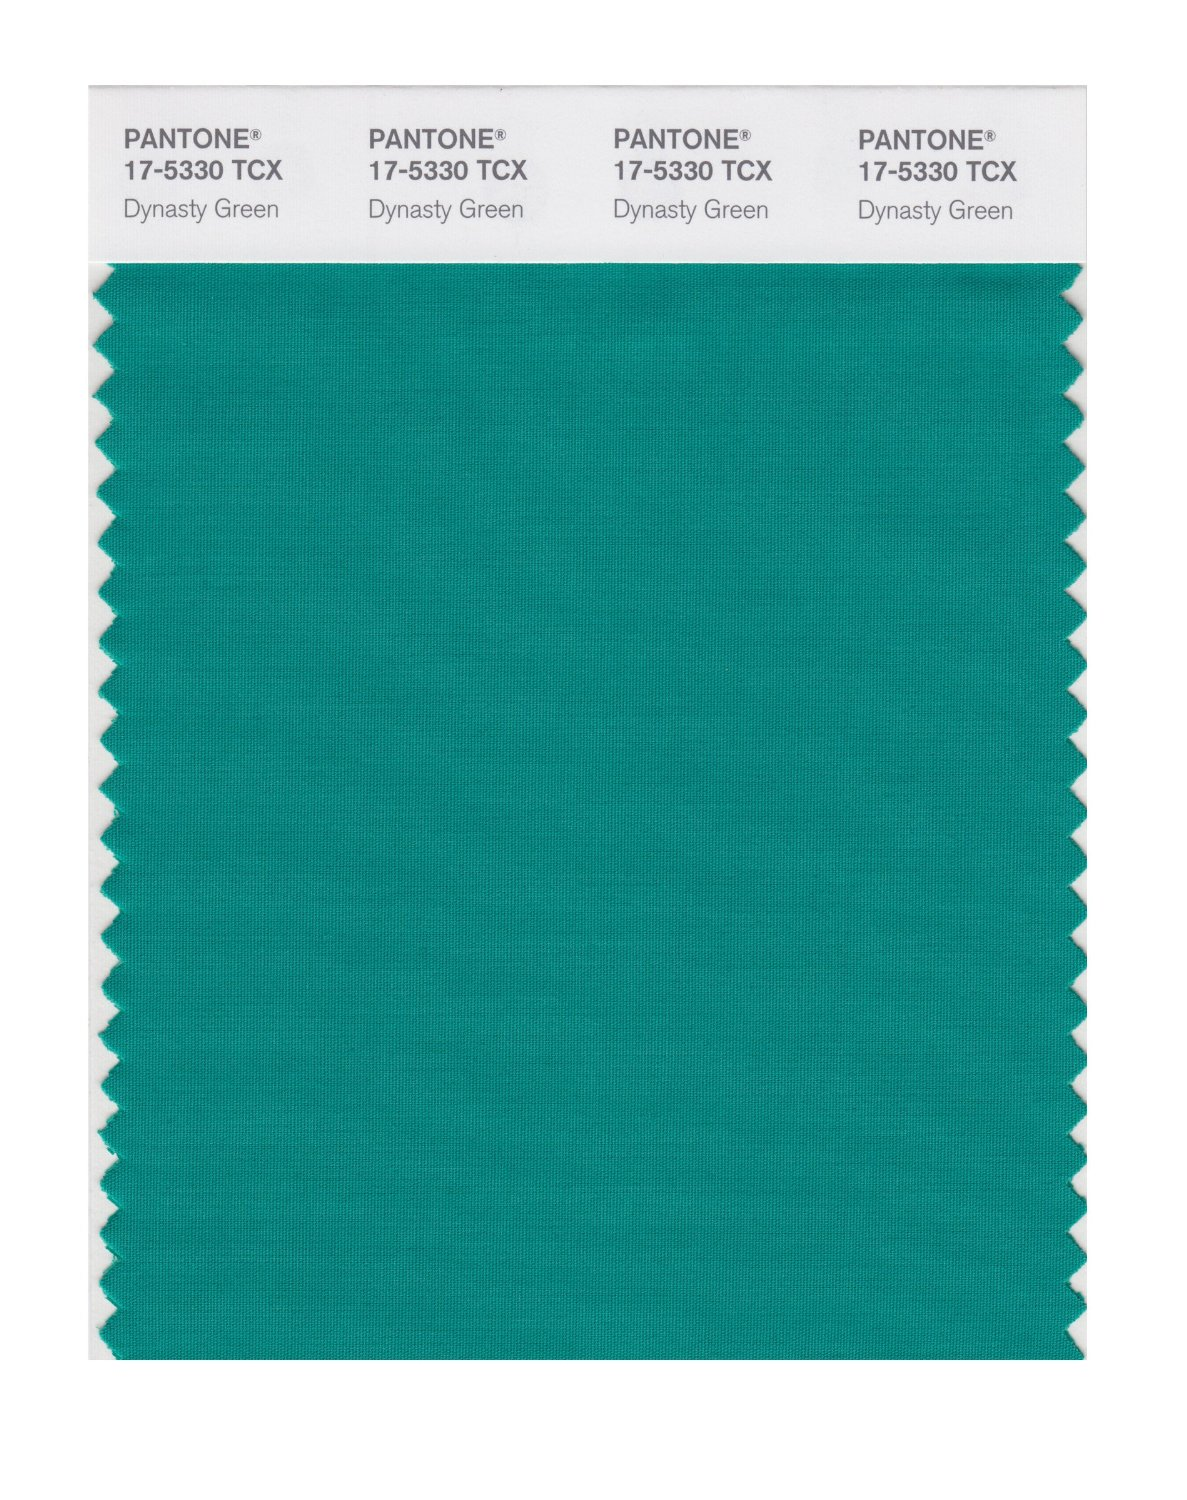 Pantone Smart Swatch 17-5330 Dynasty Green